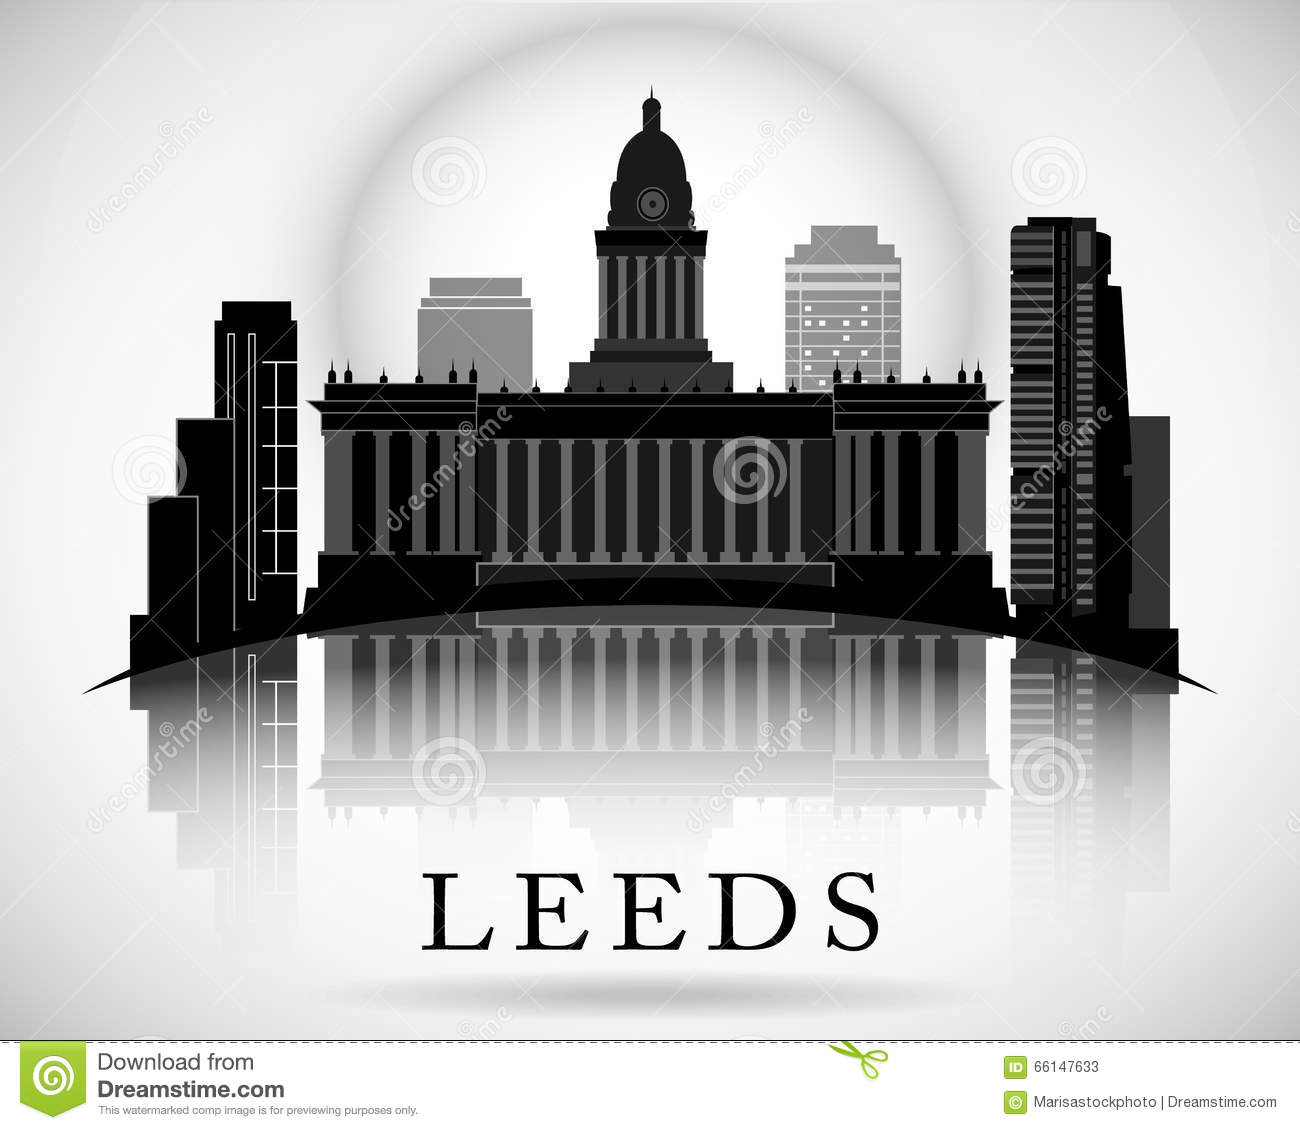 Leeds Stock Illustrations.